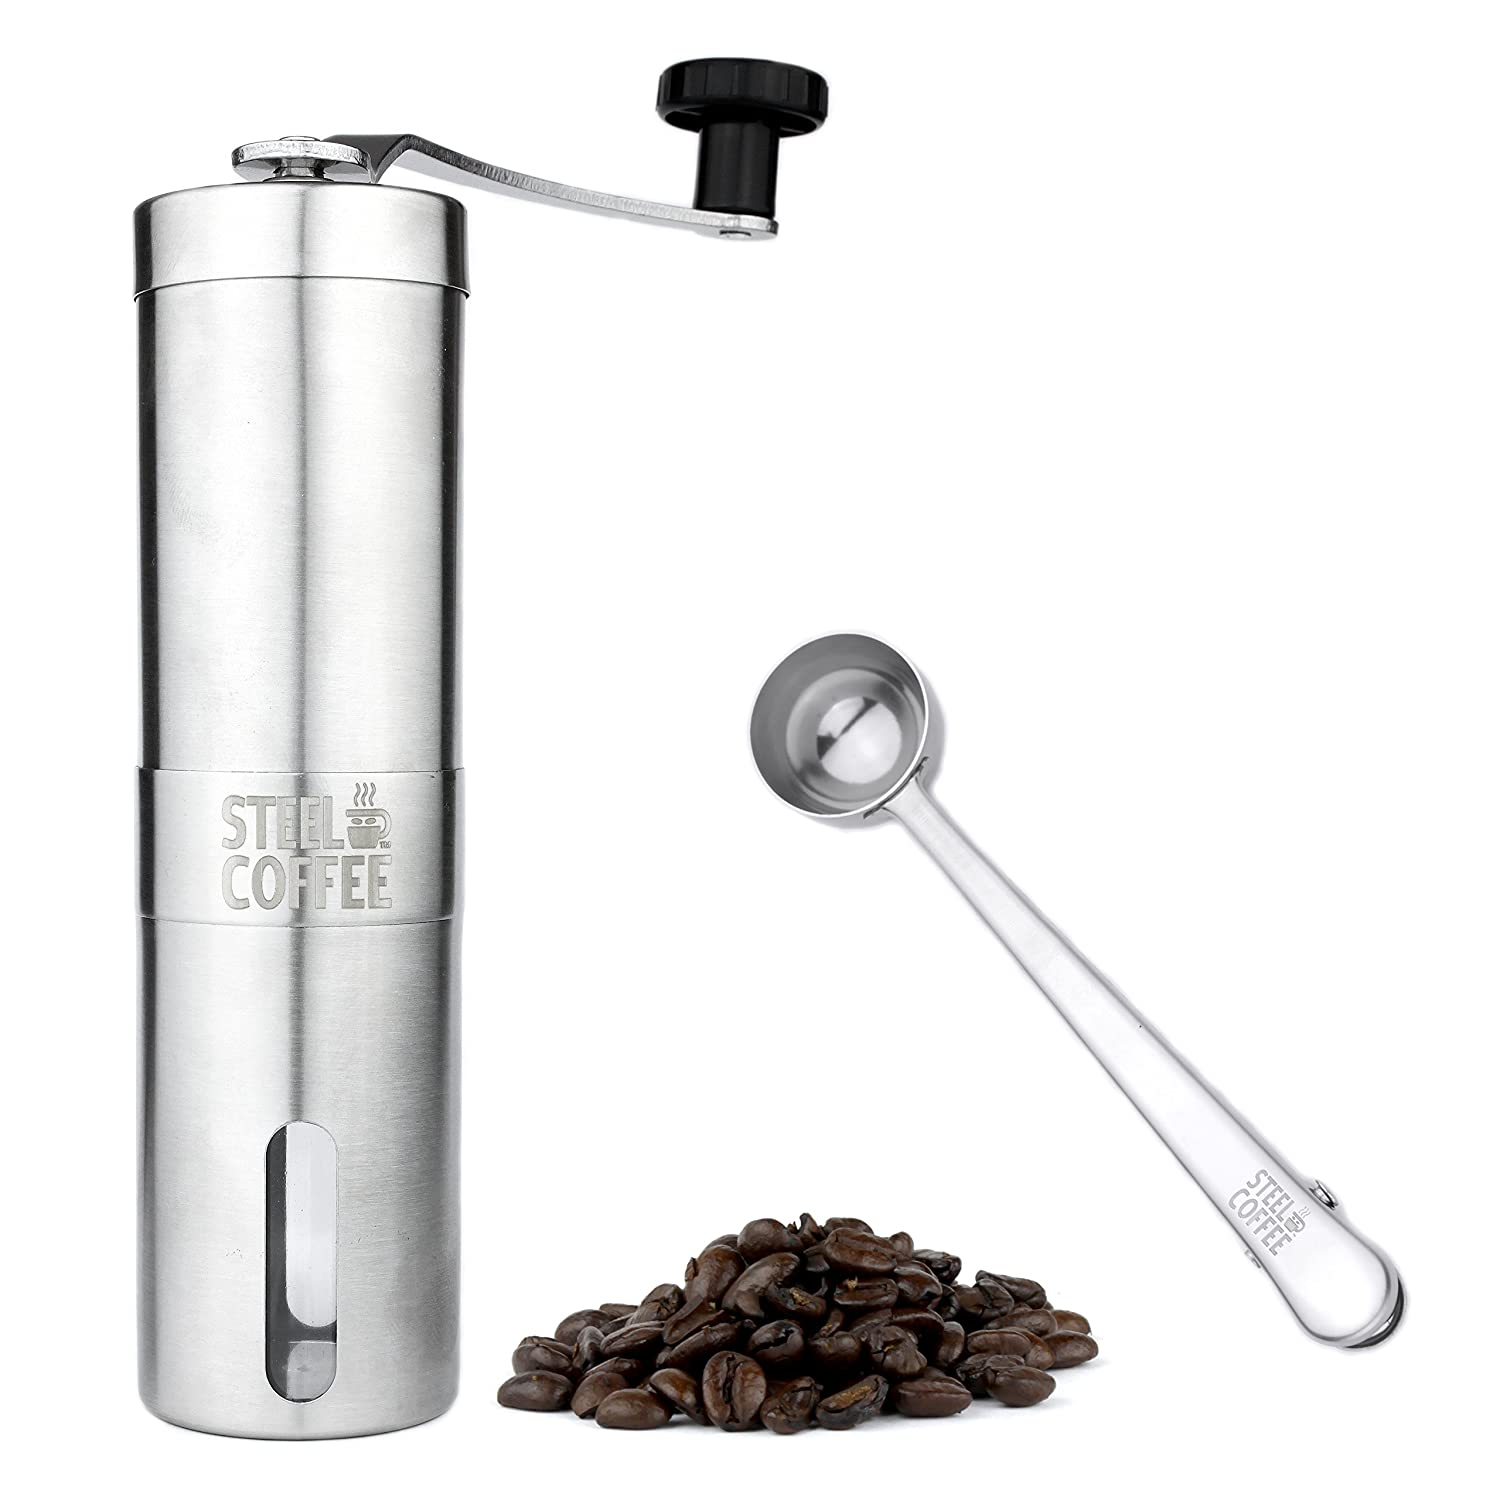 Manual Conical Burr Coffee Grinder: Hand Held Stainless Steel Body and Adjustable Setting Ceramic Mill Grinders for Turkish Coffee, Fine Espresso, Drip, and Coarse French Press - Professional No Mess Steel Coffee SYNCHKG097990